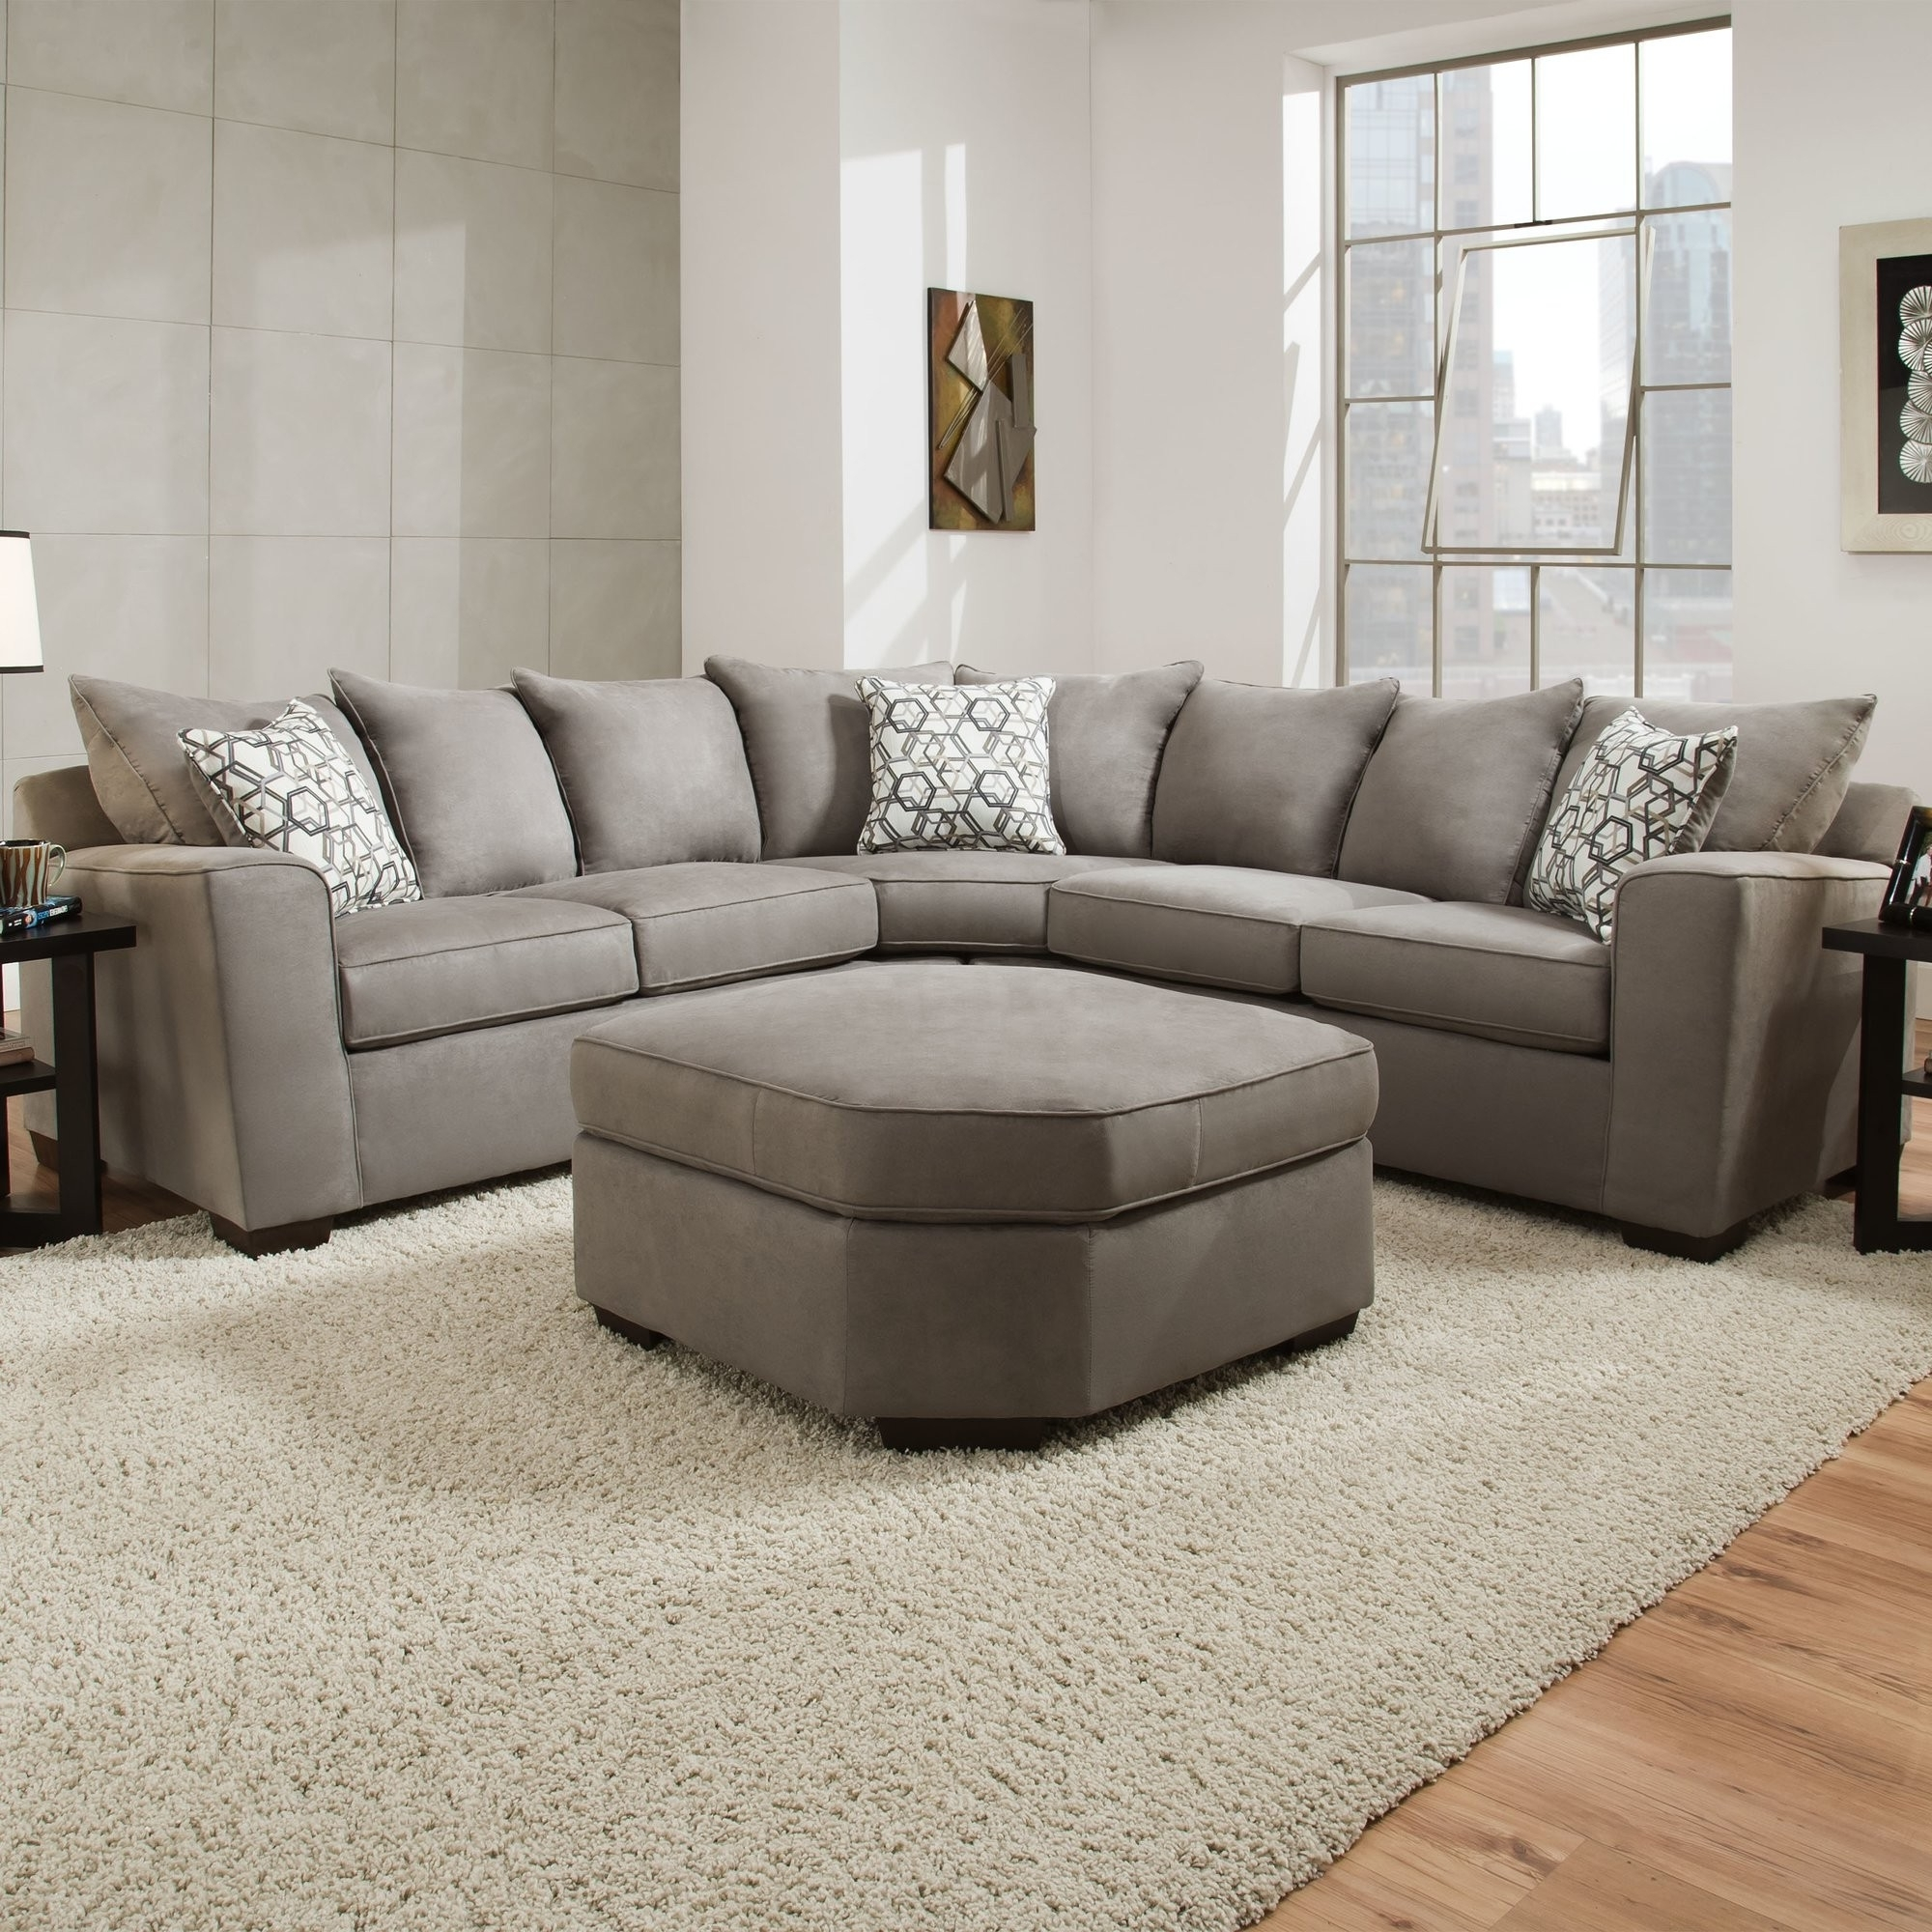 Recent Fresh Simmons Sectional Sofa Joss And Main – Buildsimplehome Throughout Joss And Main Sectional Sofas (View 2 of 20)